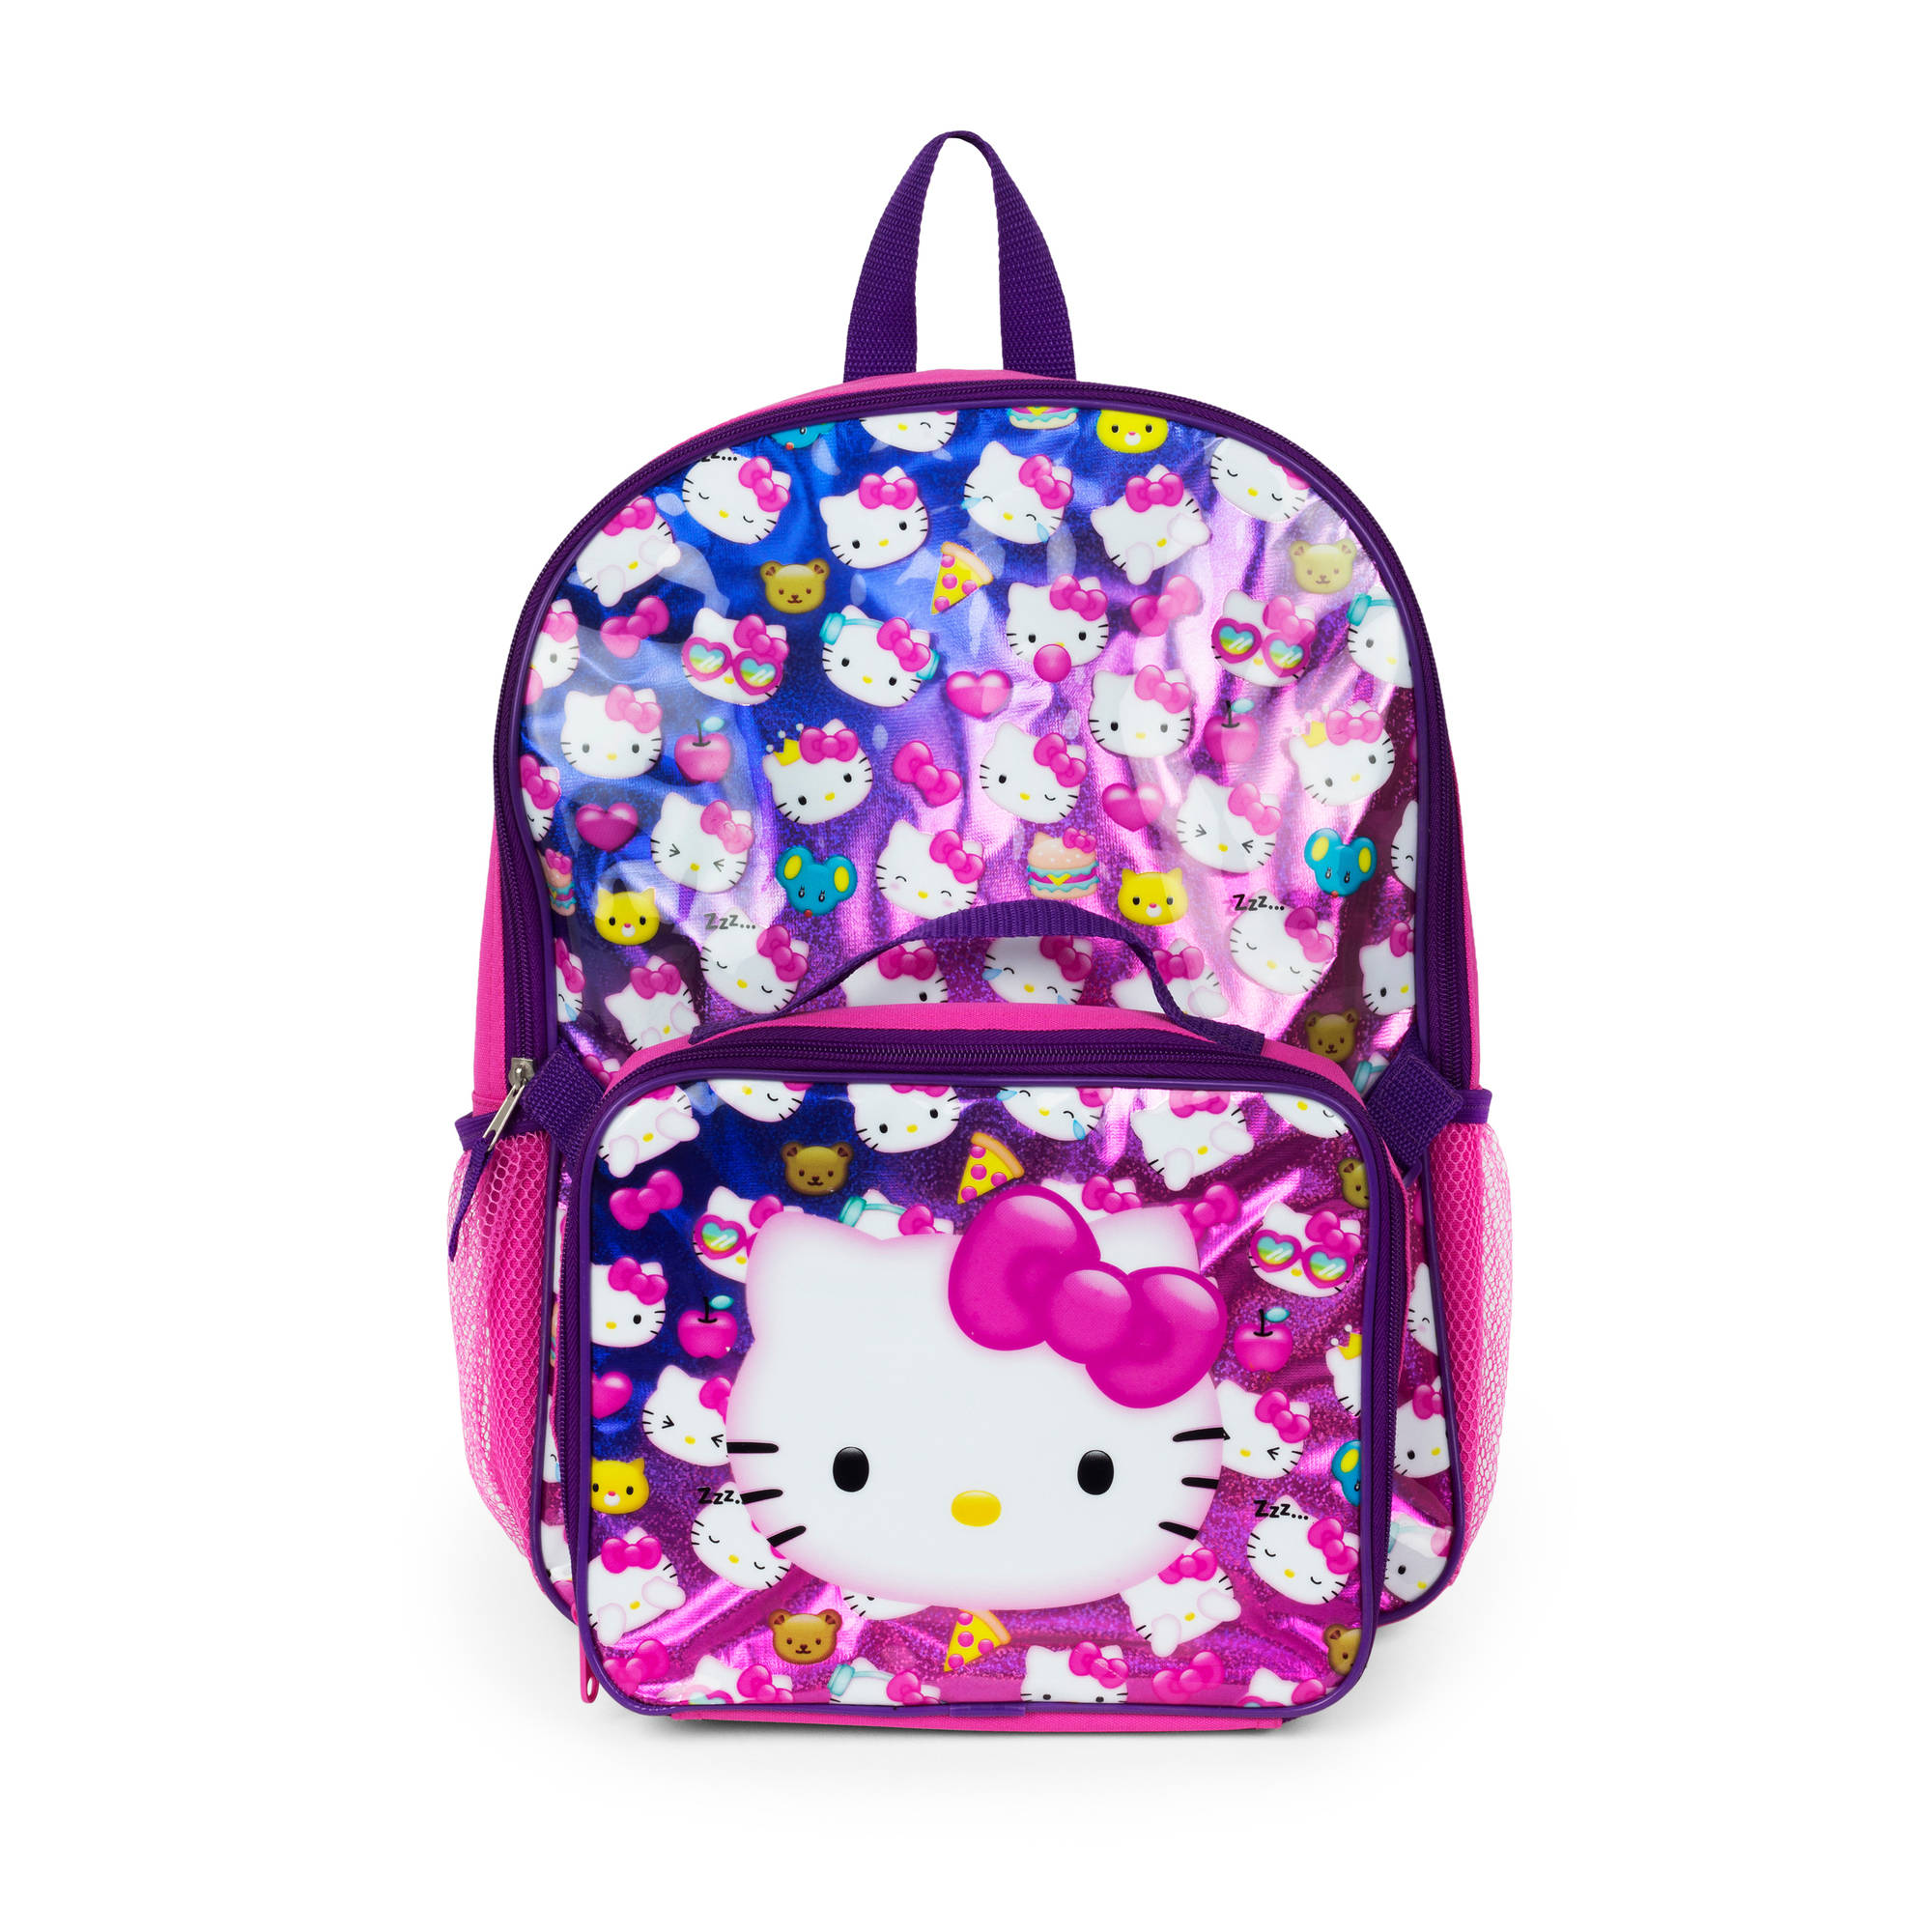 "Hello Kitty Tossed Kitty! 16""  Backpack with Lunch Kit"